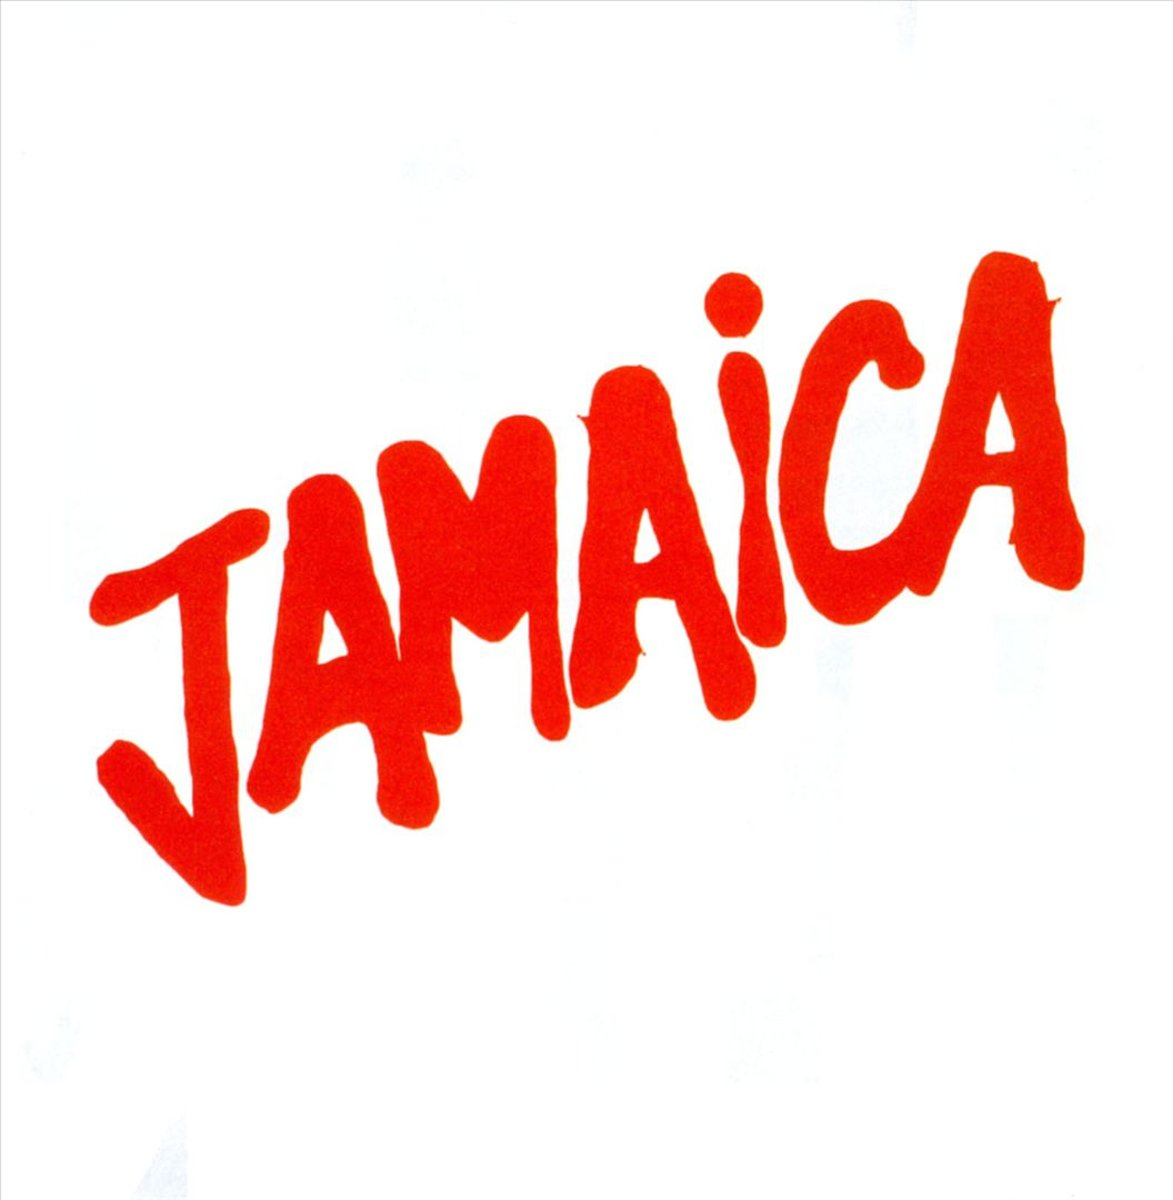 Jamaica. No Problem